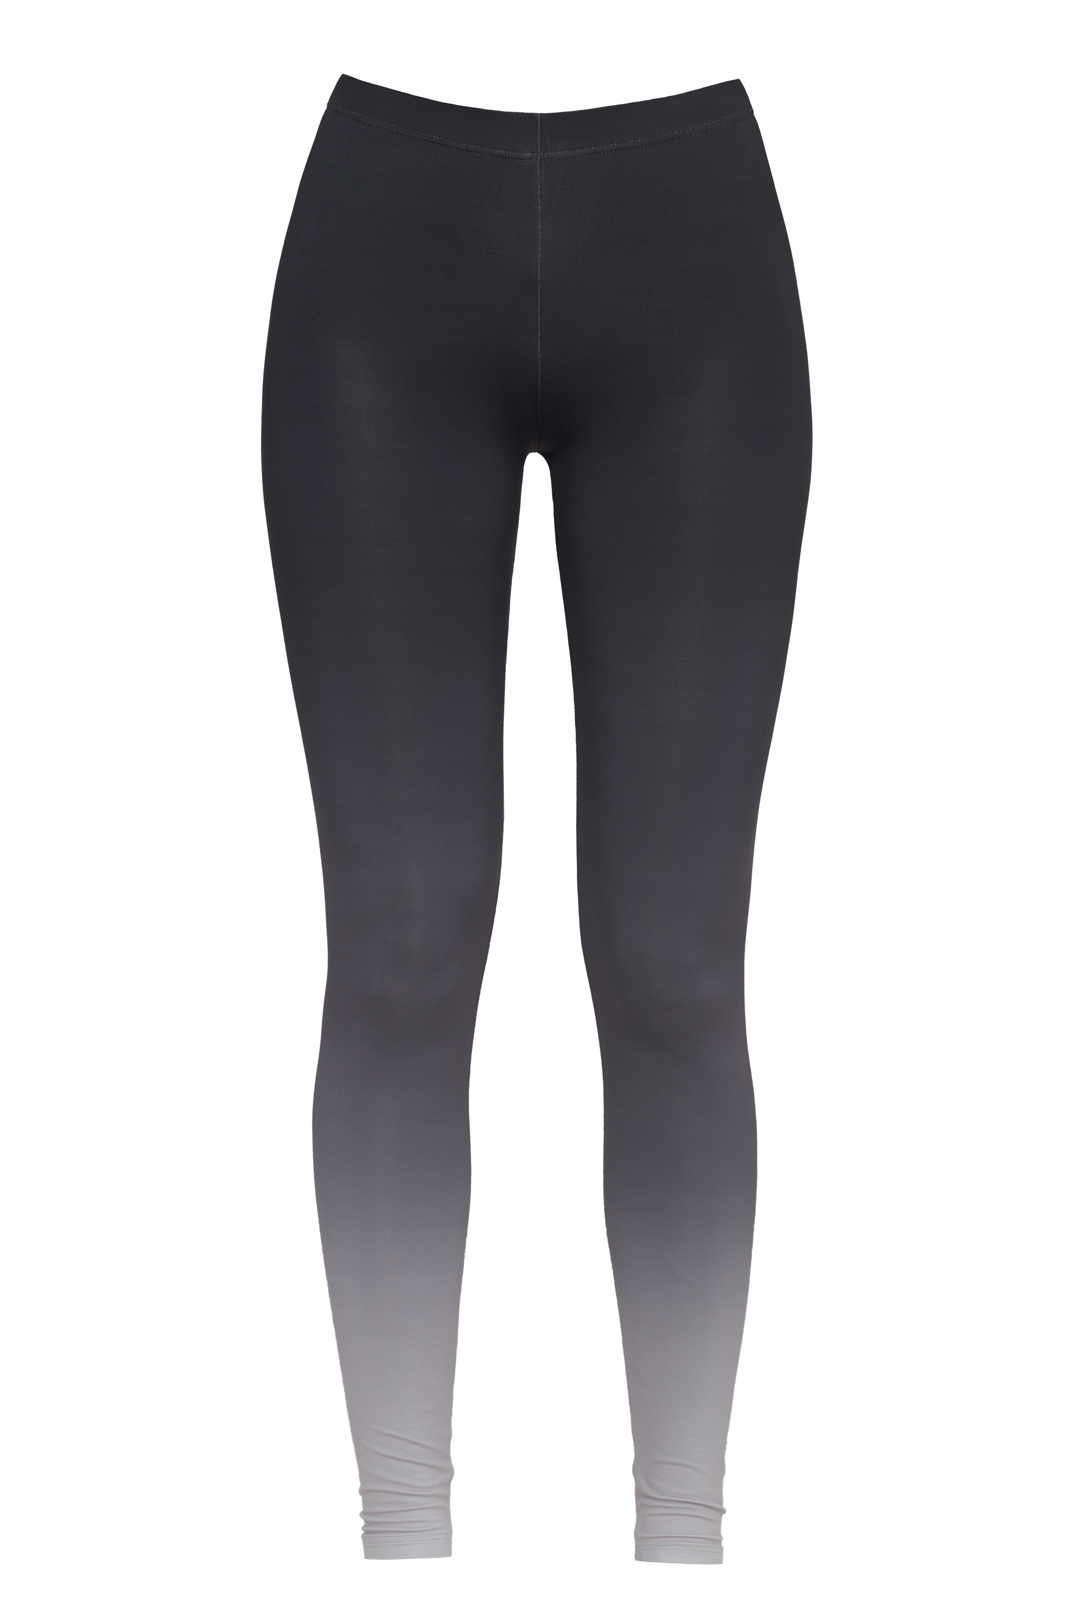 Adela Leggings by Naked Bruce on curated-crowd.com